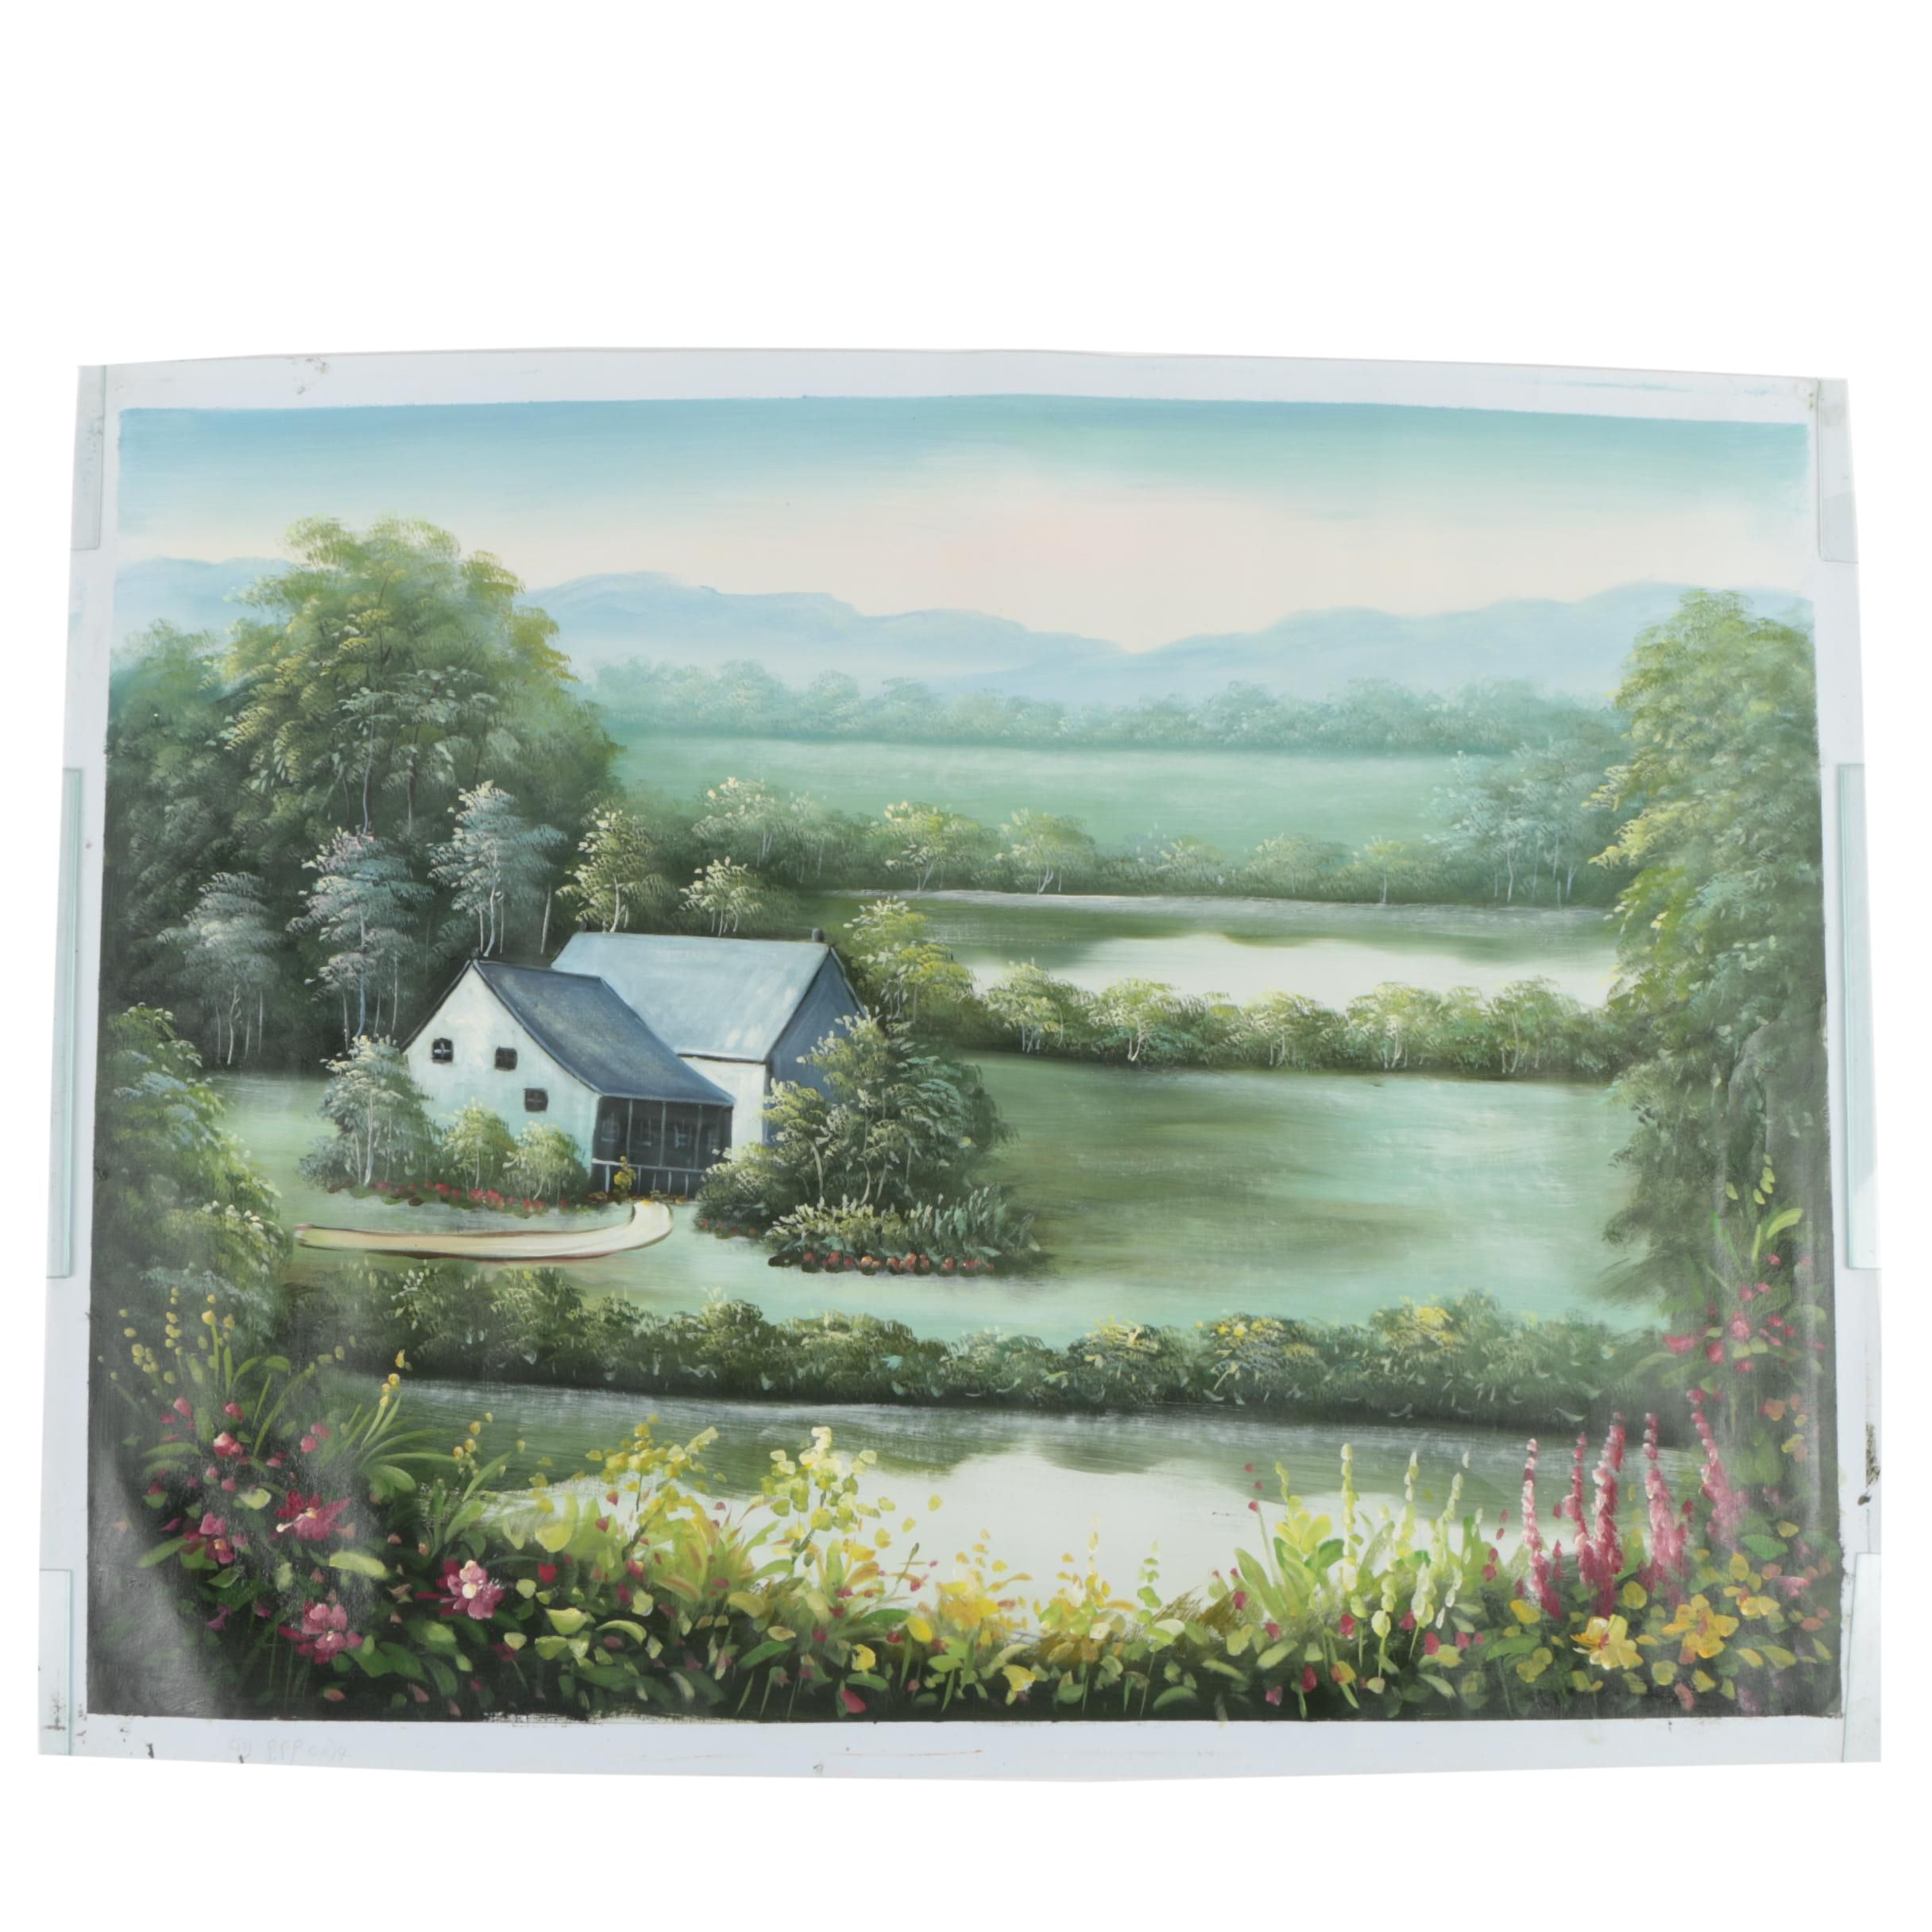 Oil on Canvas Landscape Painting of a House by Water